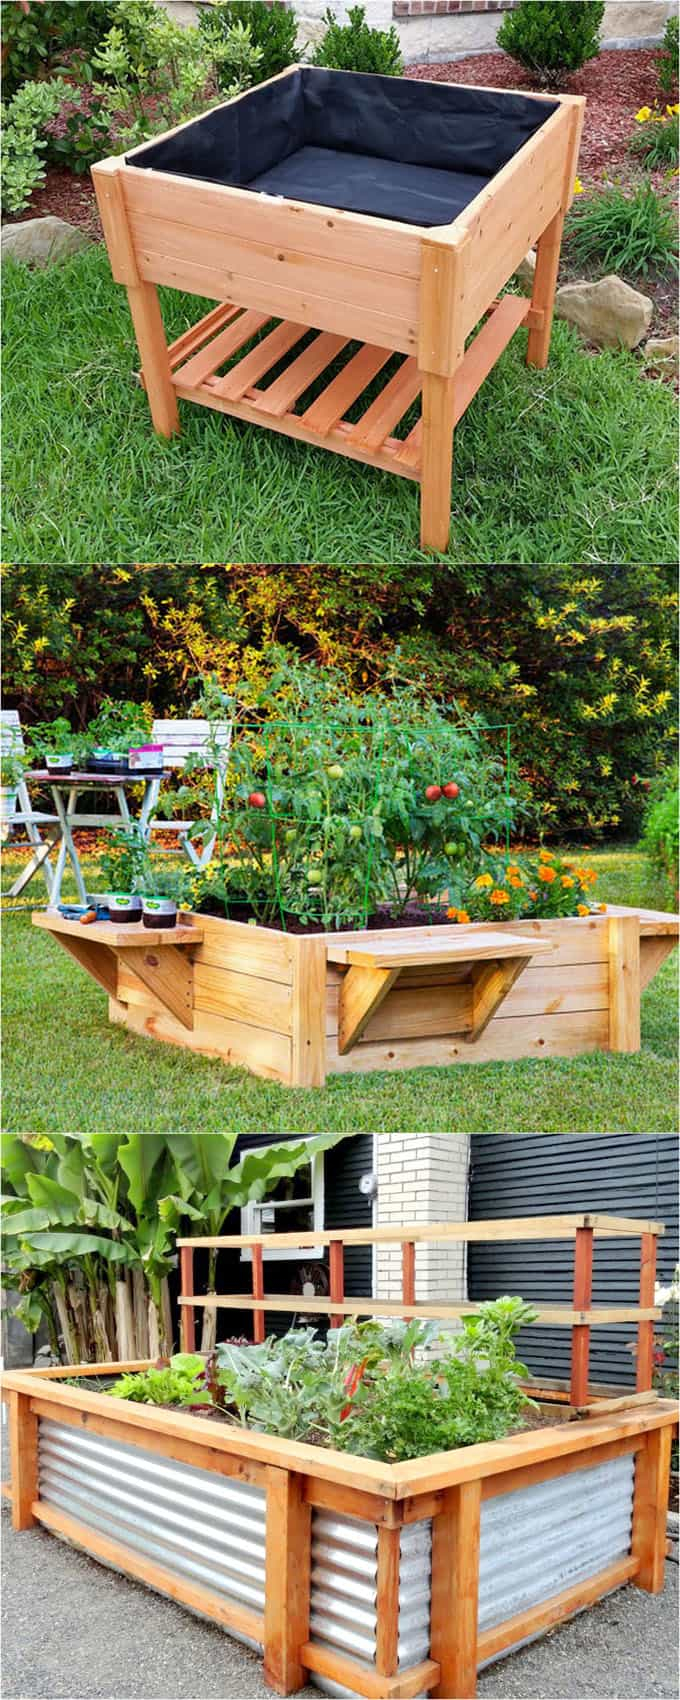 28 Amazing Diy Raised Bed Gardens A Piece Of Rainbow intended for 13 Clever Initiatives of How to Make Backyard Raised Garden Ideas